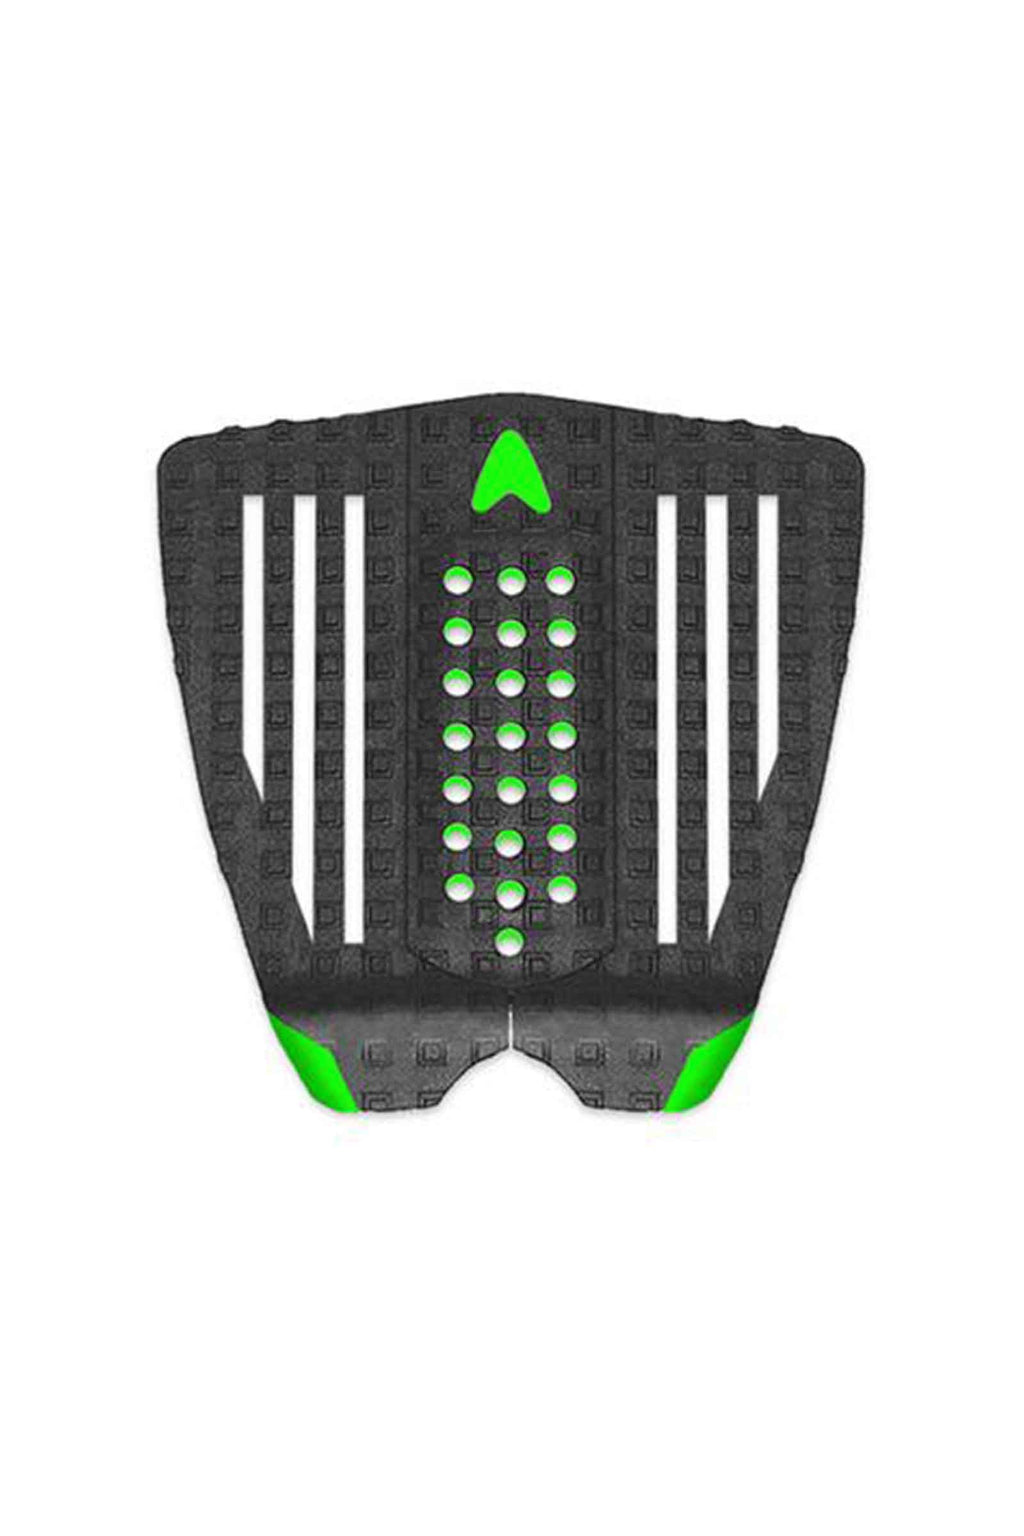 Astro Deck Gudauskus Pad - Black / Green Grip Pad Traction